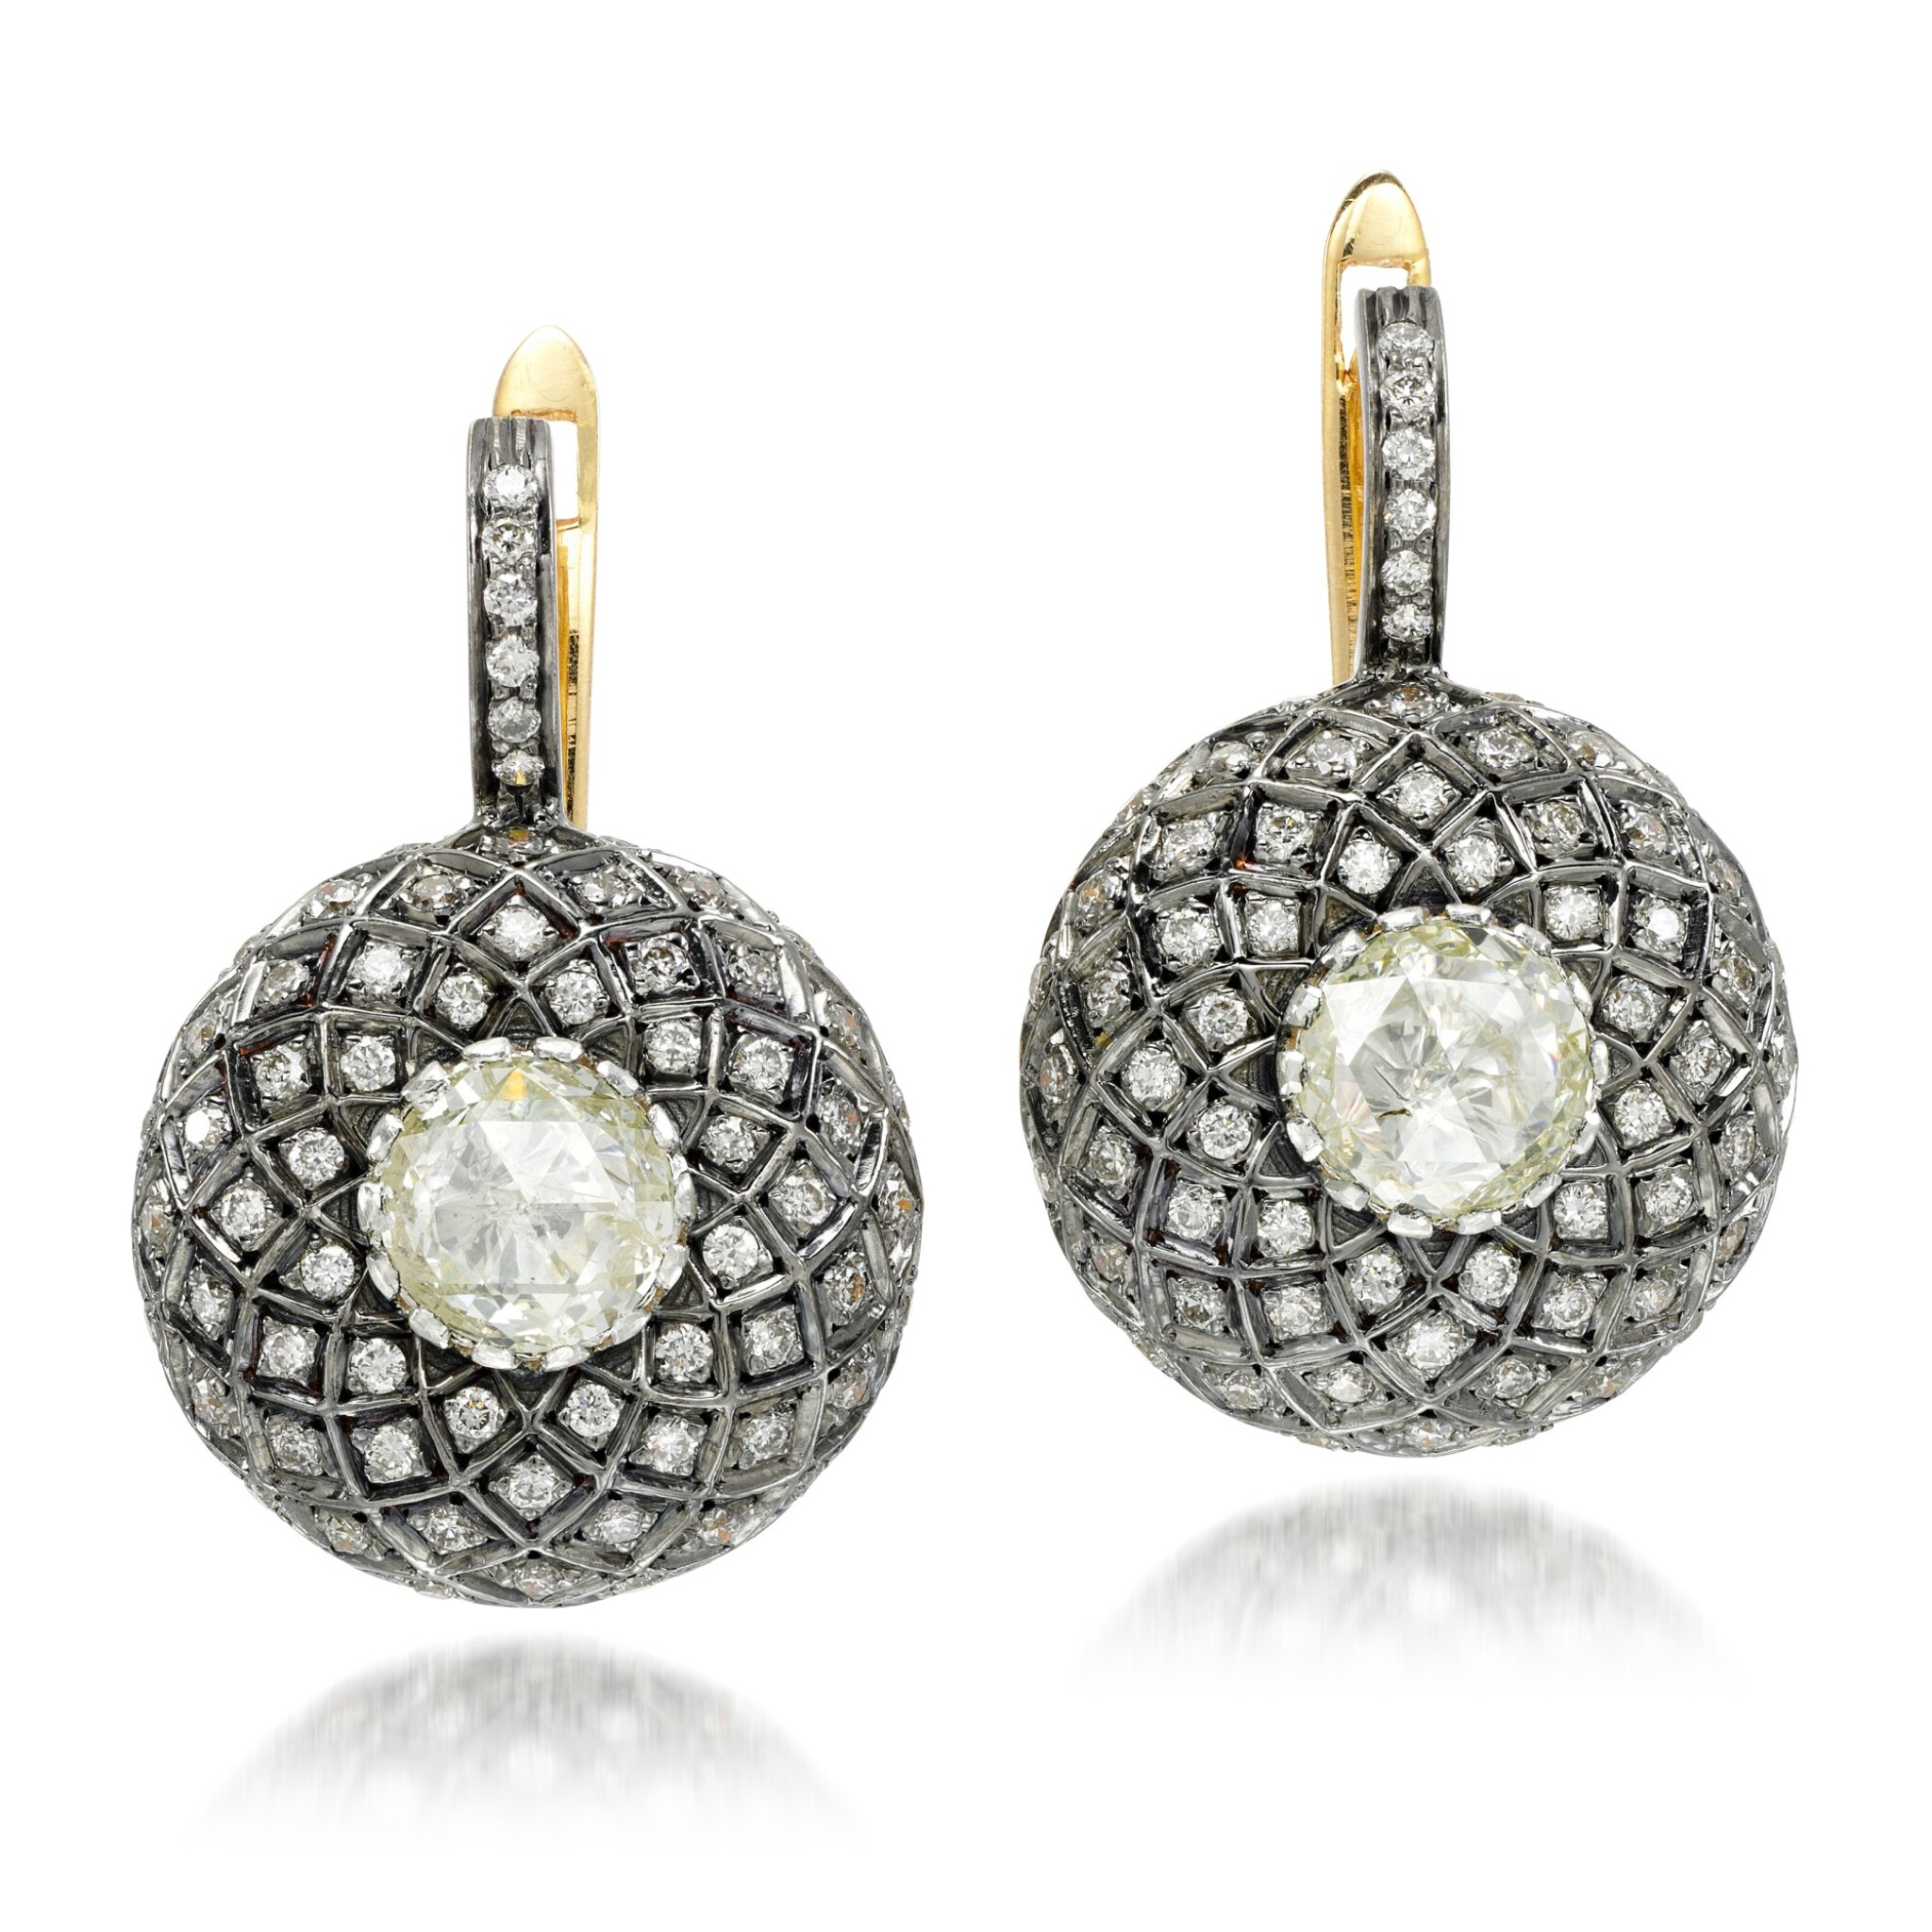 View 1 of Lot 26. Pair of diamond earrings, 'Indo Russian'.